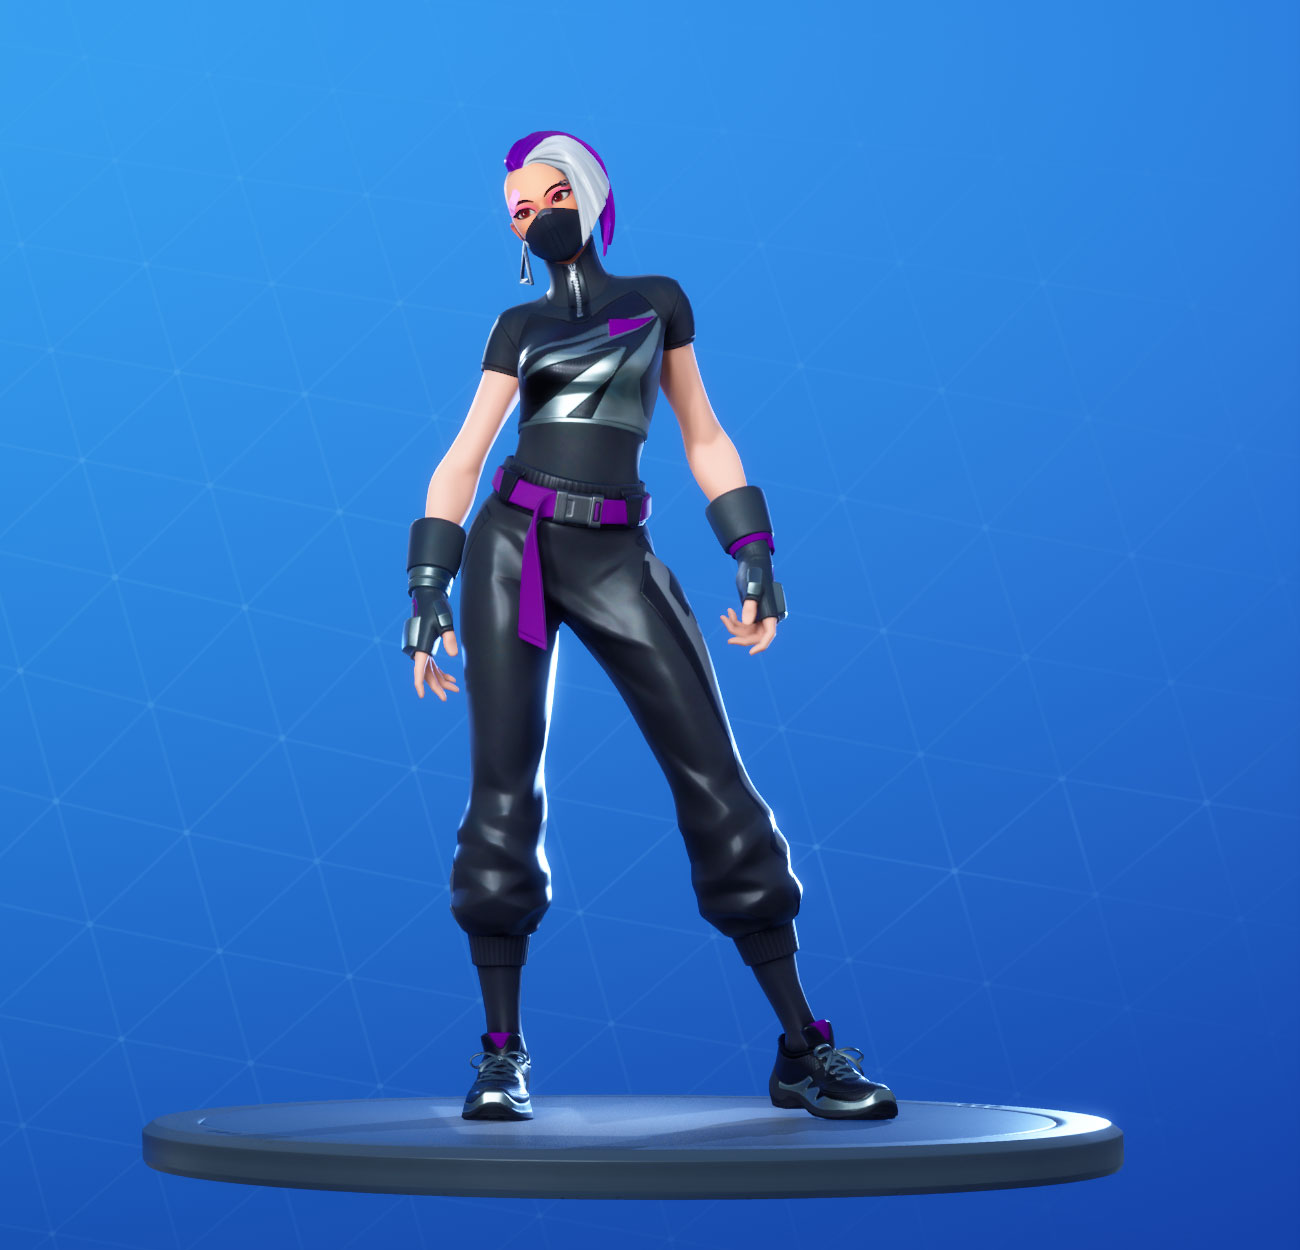 Fortnite Catalyst Skin Outfit Pngs Images Pro Game Guides